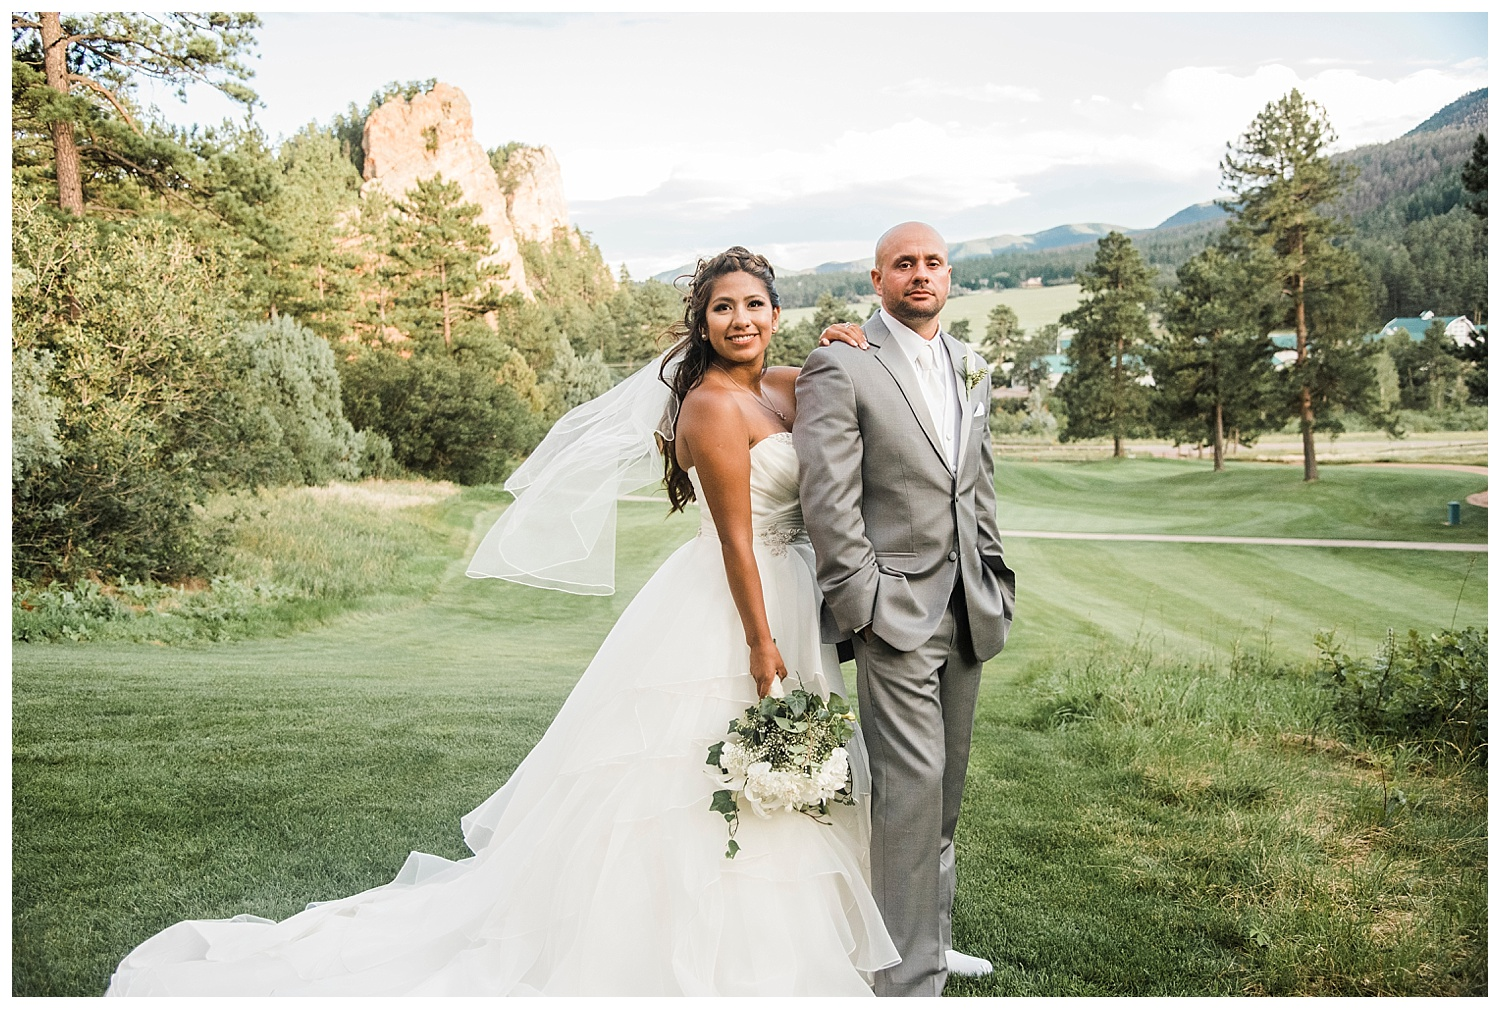 Perry_Park_Country_Club_Wedding_Larkspur_Colorado_Apollo_Fields_36.jpg